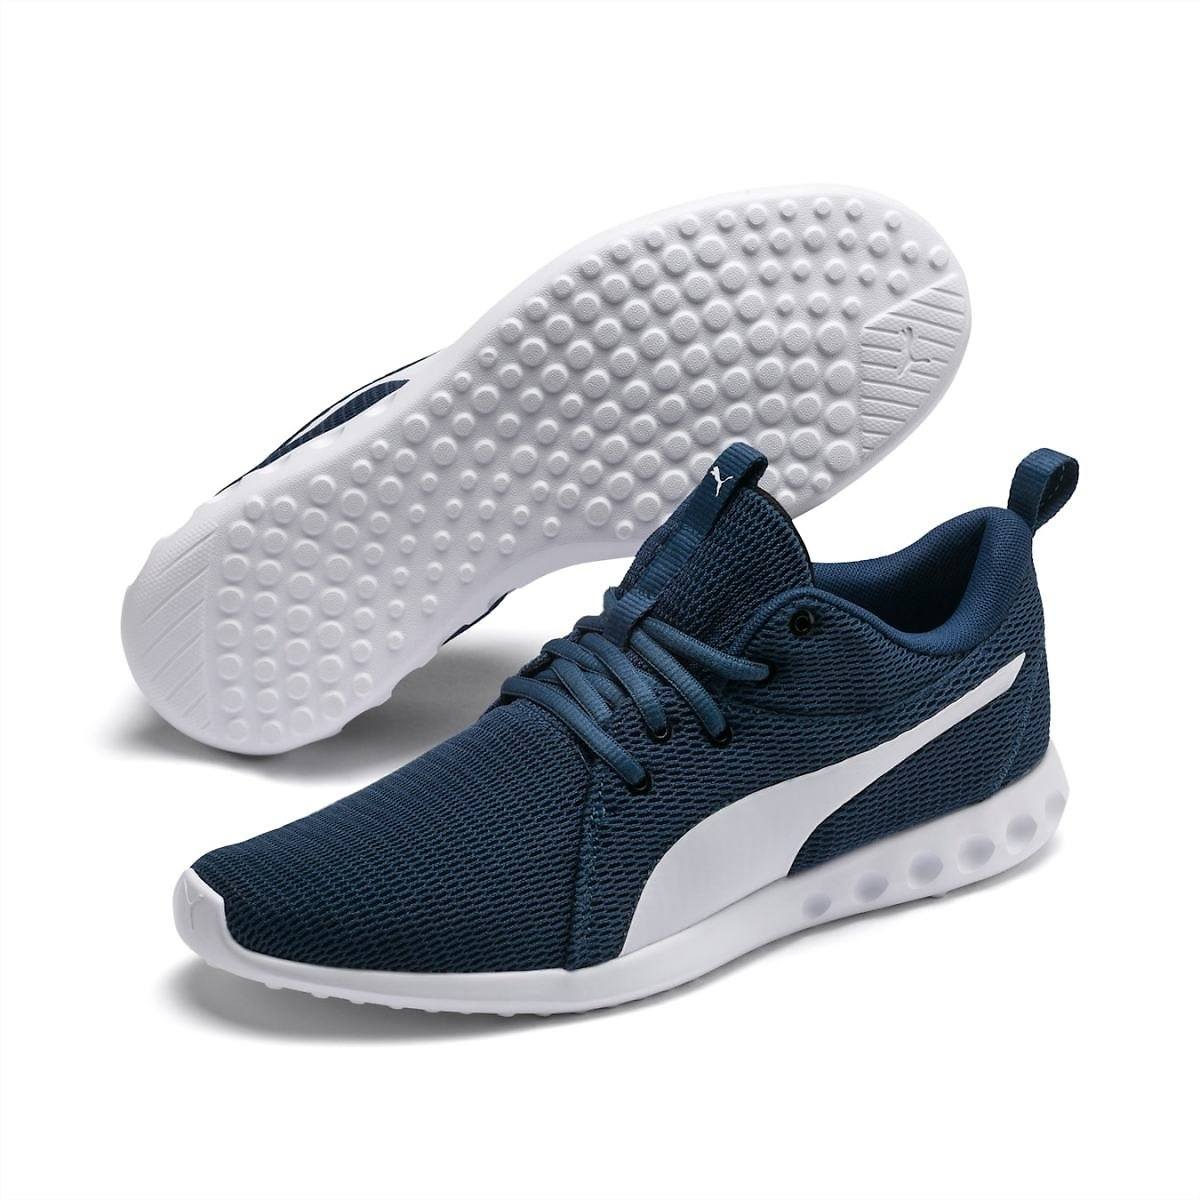 Carson 2 New Core Men's Running Shoes (3 Colors)